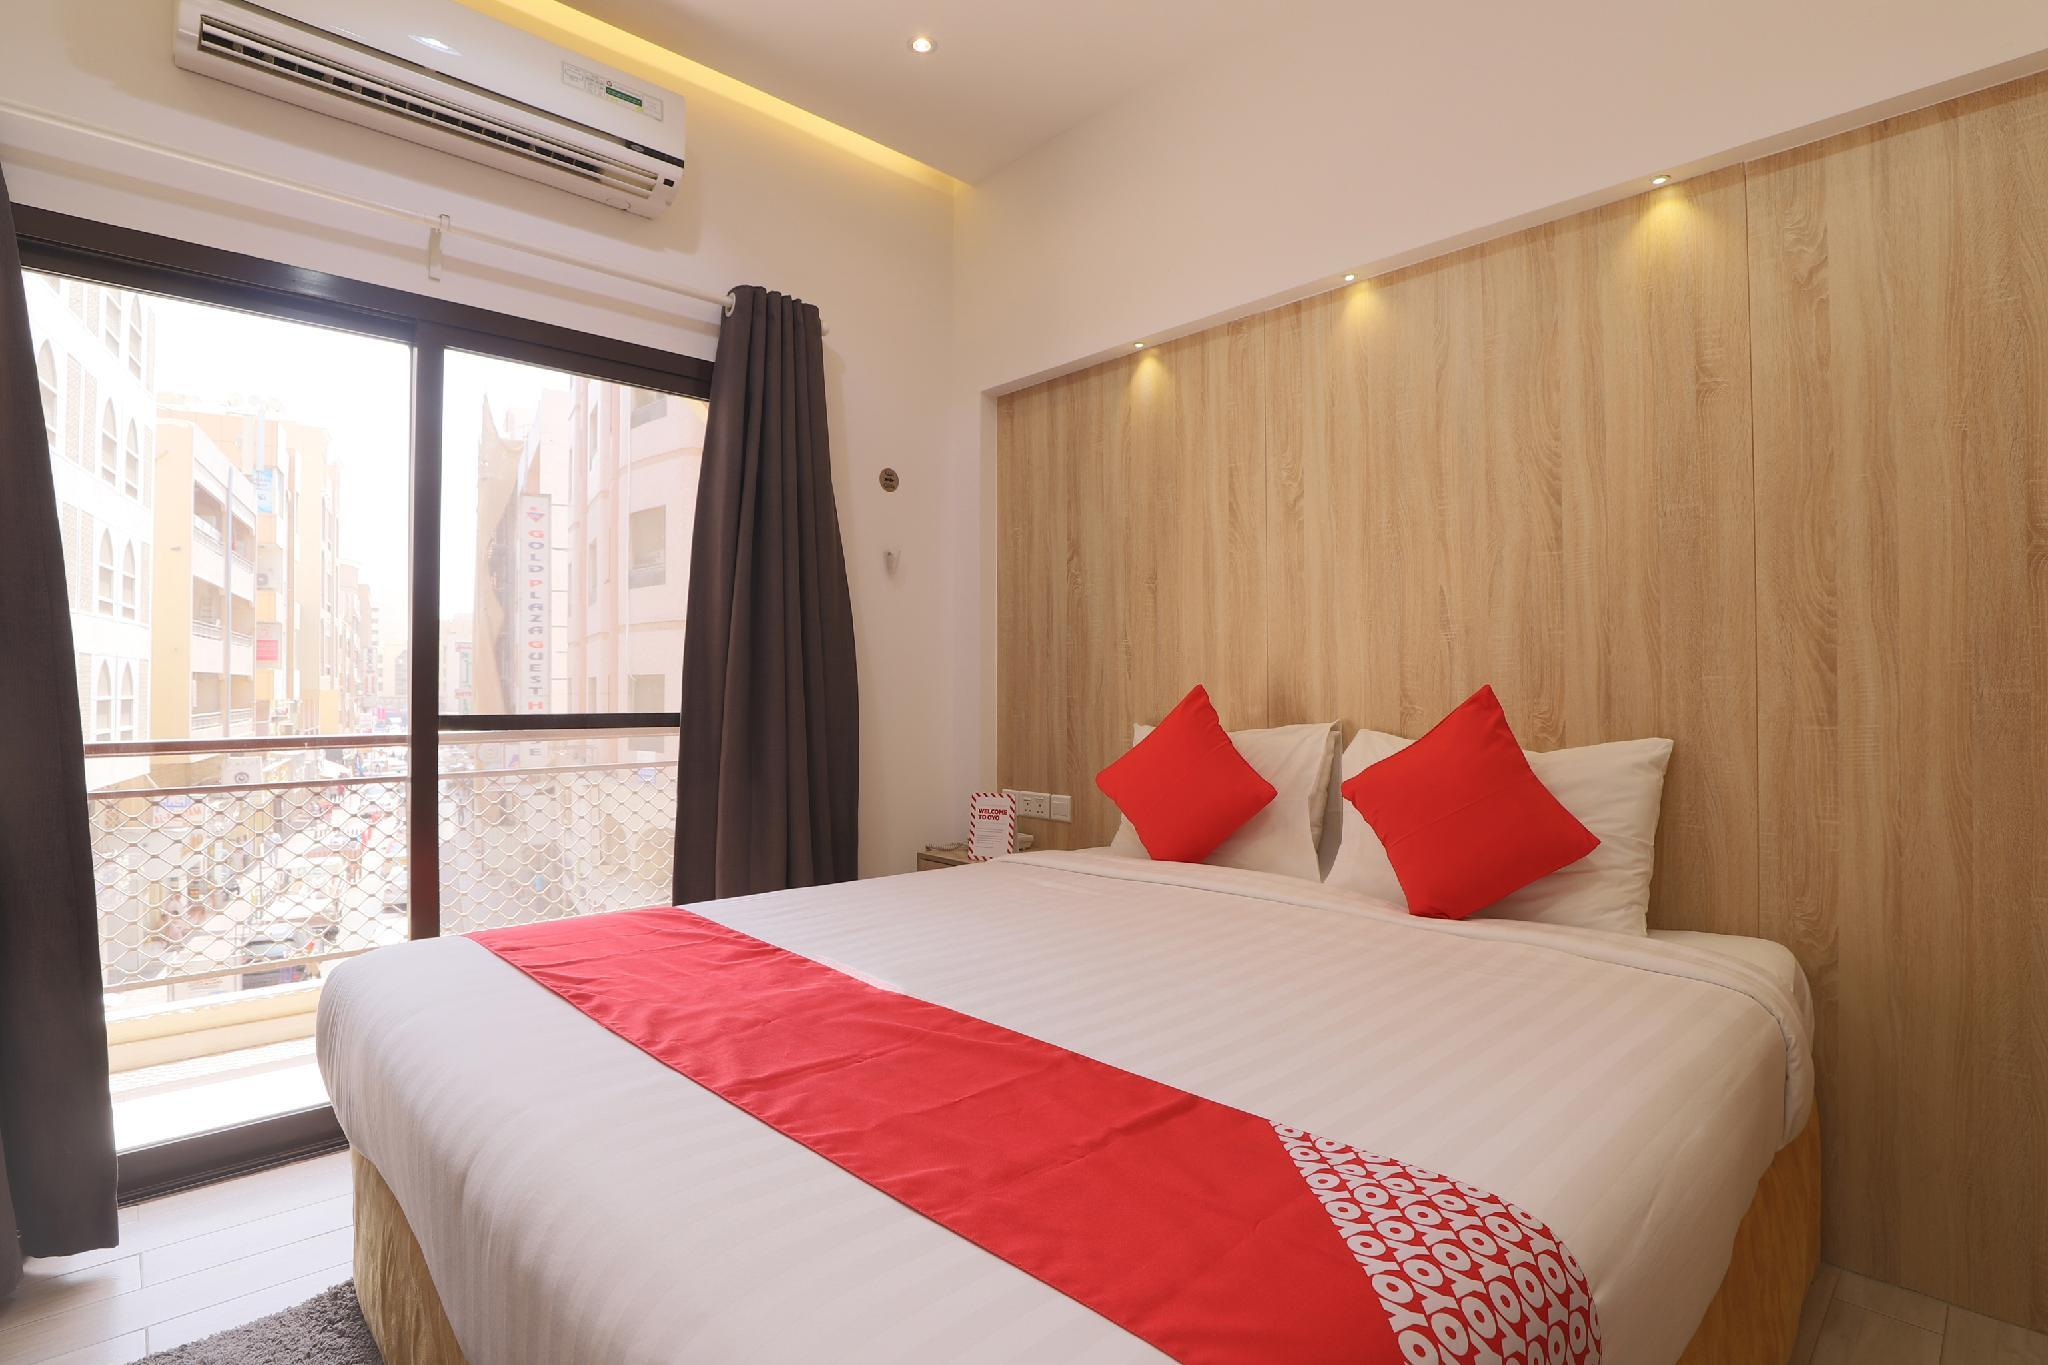 Best Price on OYO 314 24 Gold Hotel in